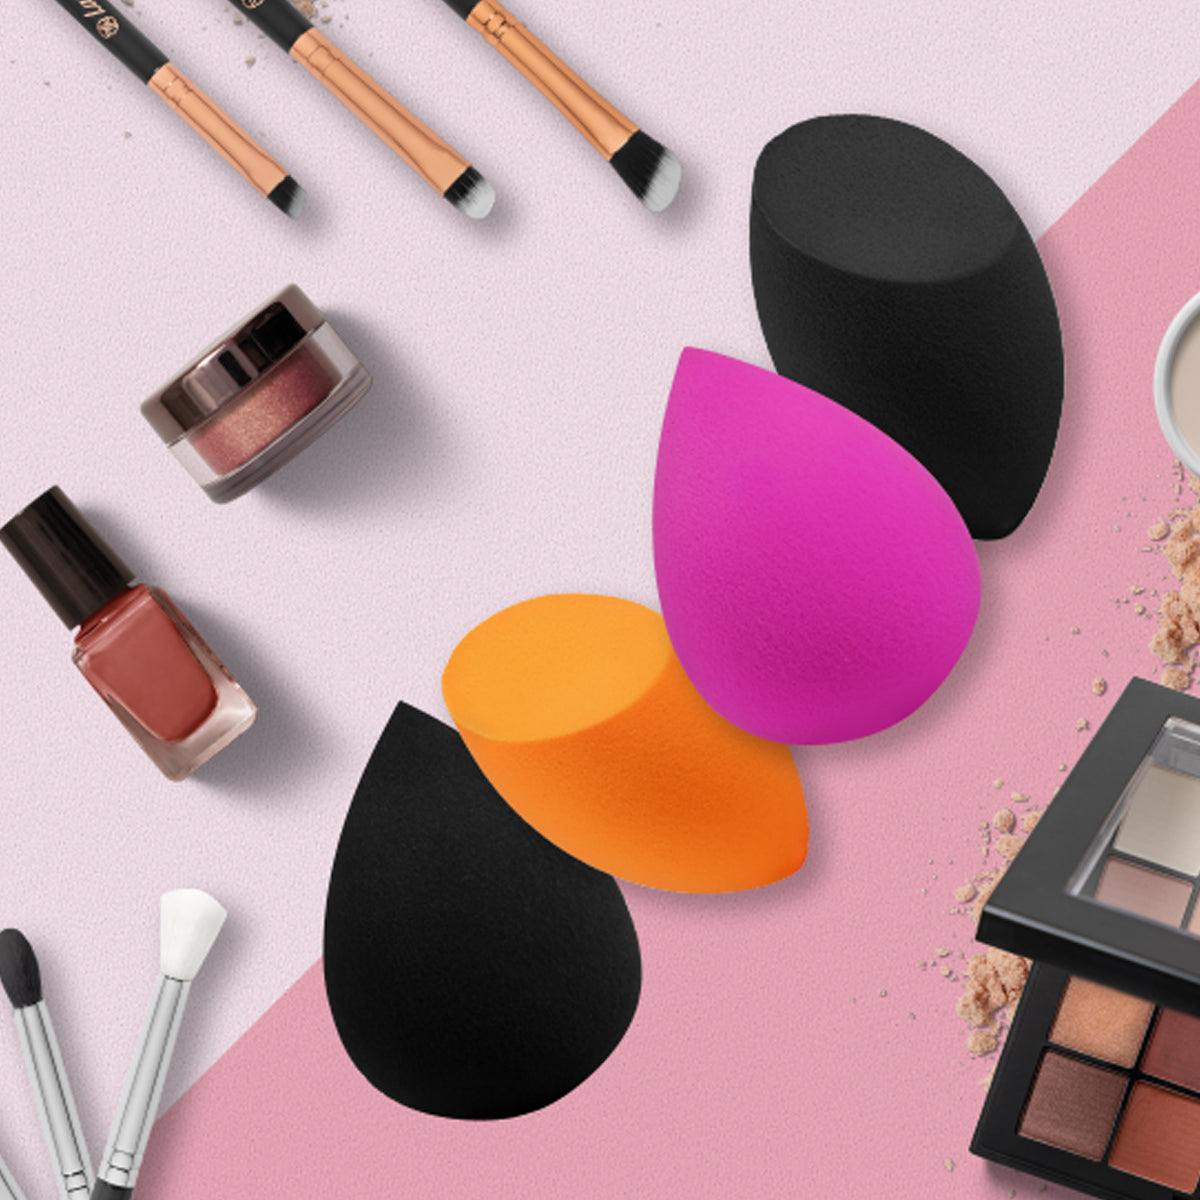 The perfect makeup sponge for a flawless finish